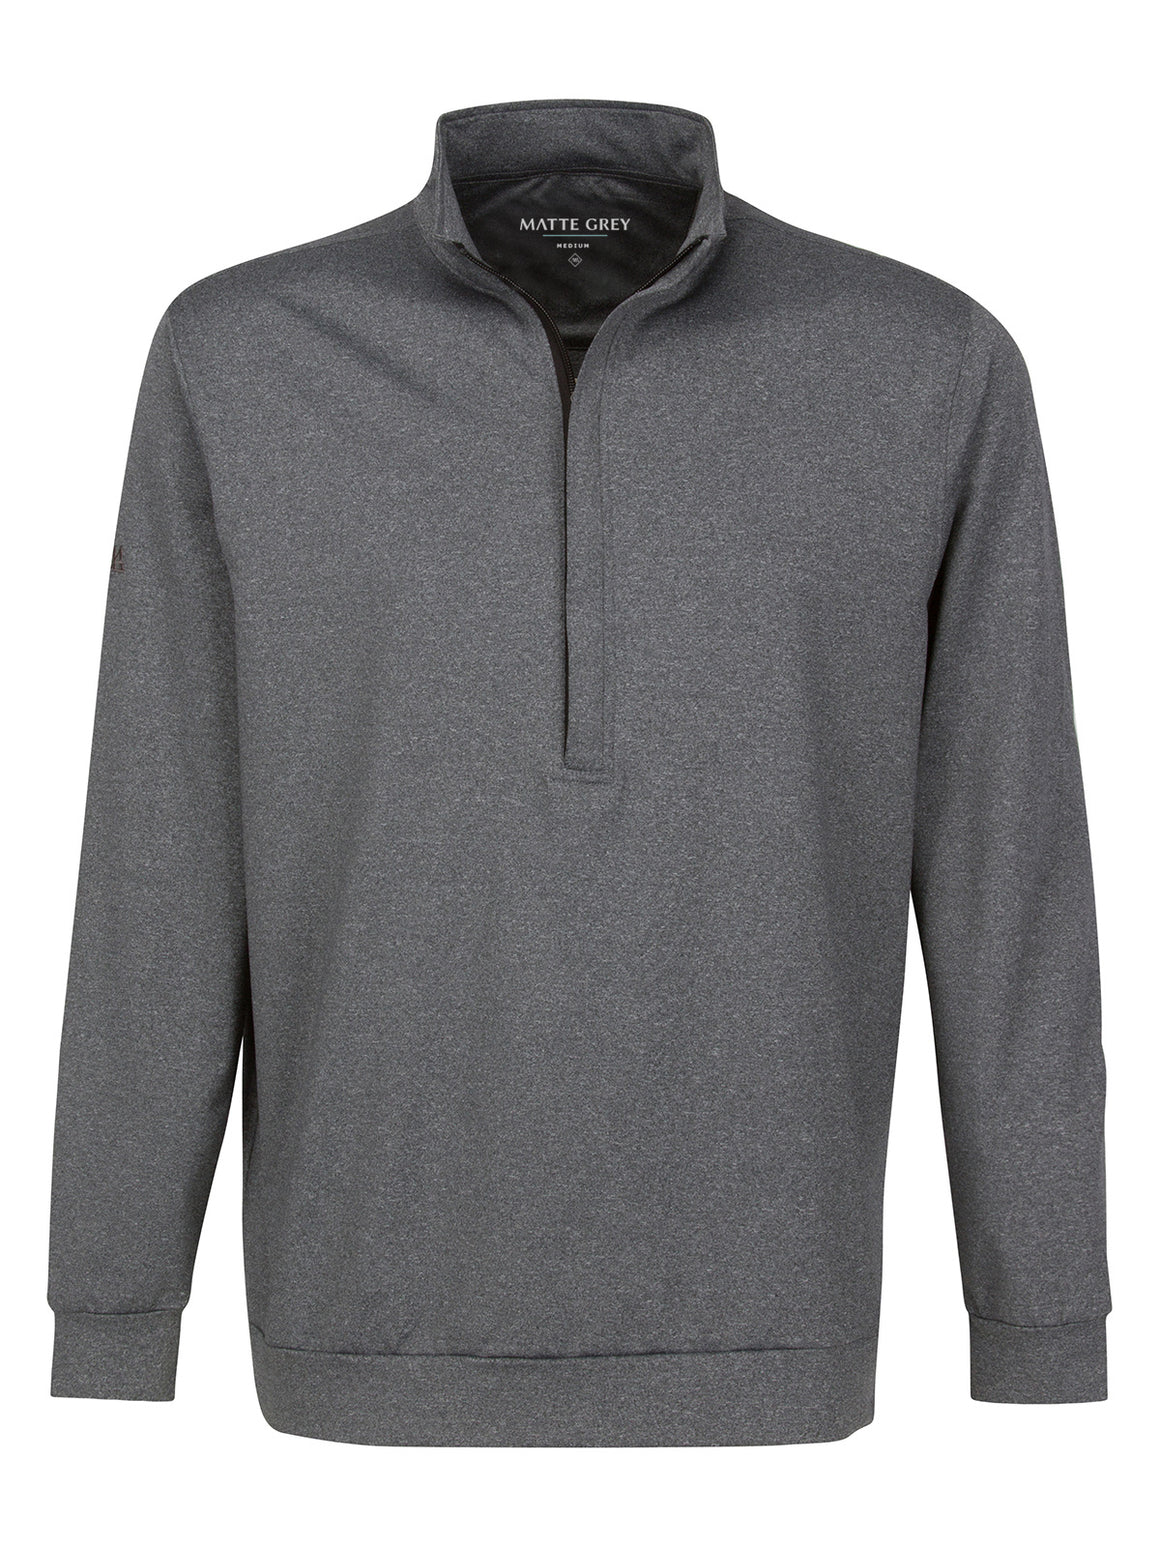 Hightower Half Zip - Charcoal Heather